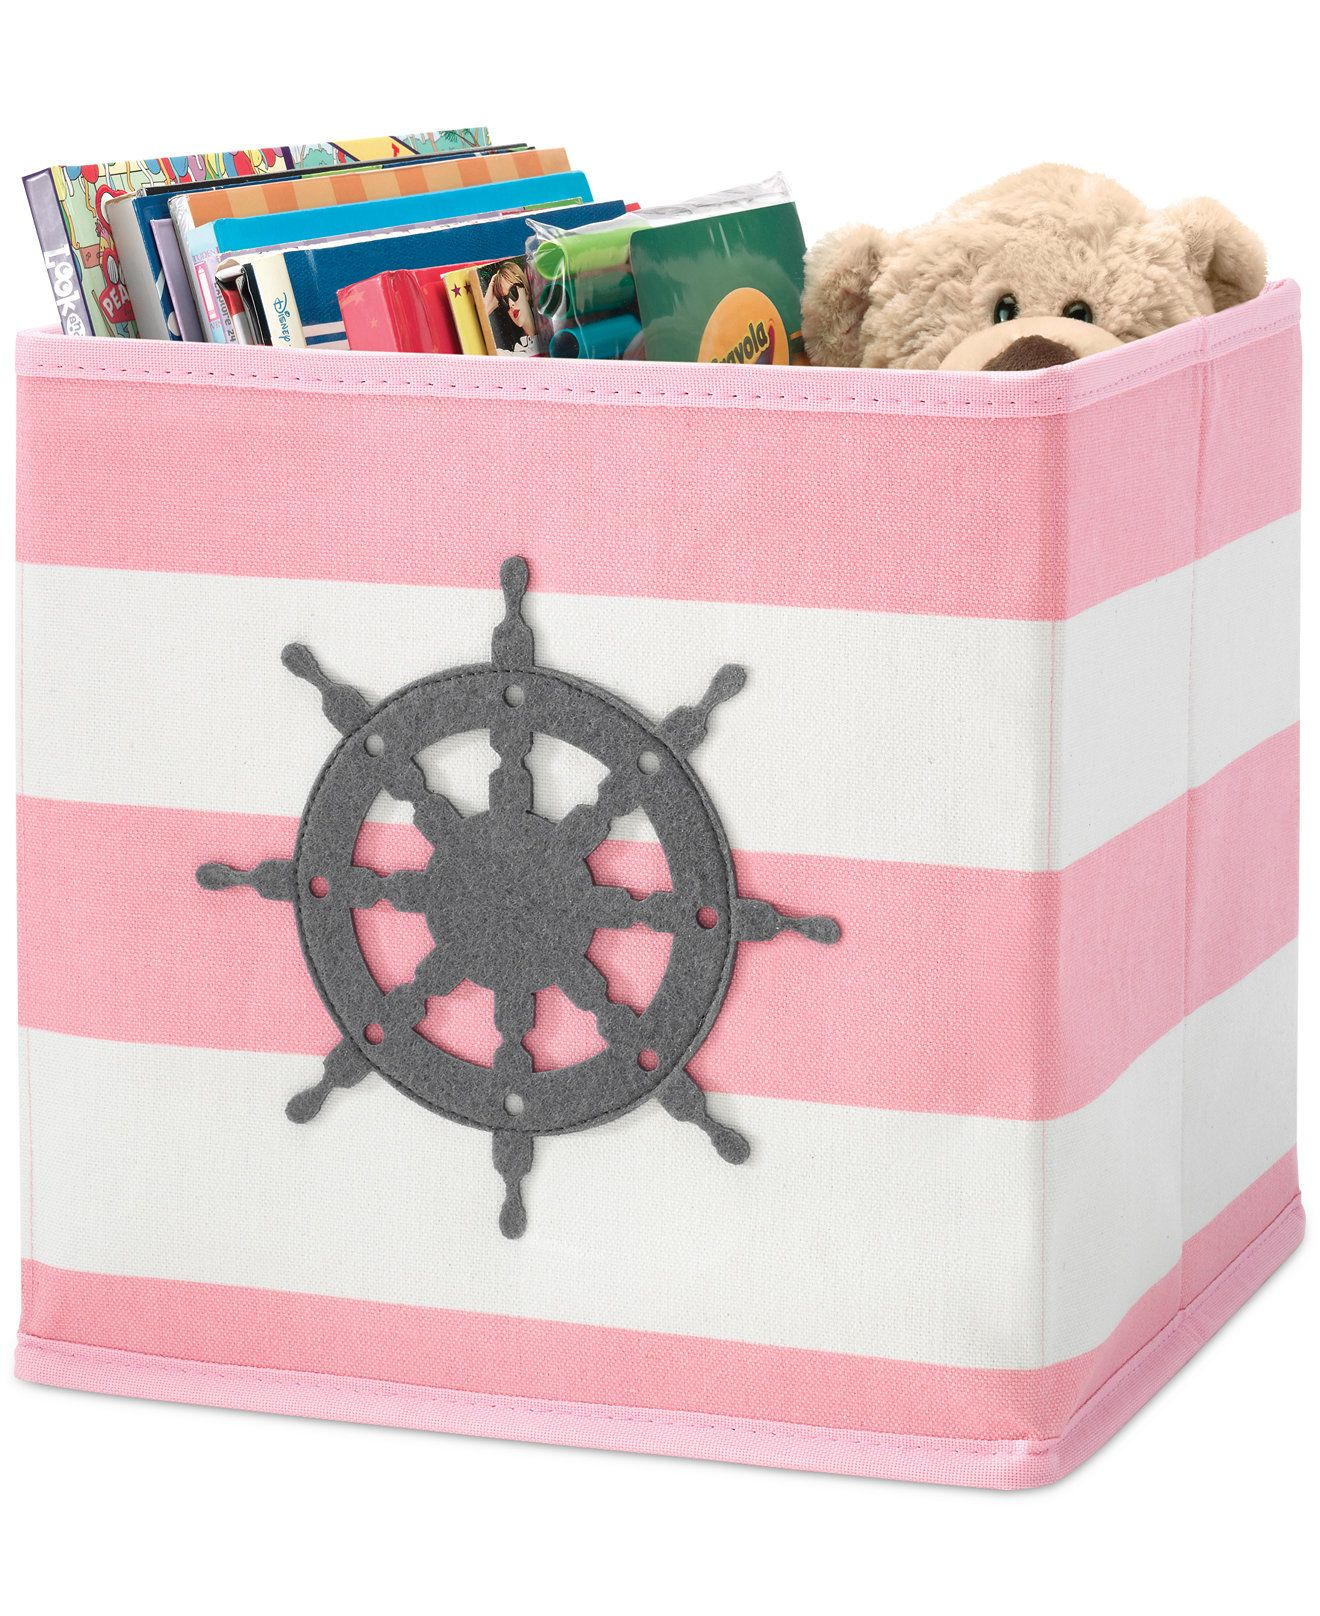 Whitmor Kids Pink Nautical Collapsible Cube   Storage U0026 Organization    Macyu0027s